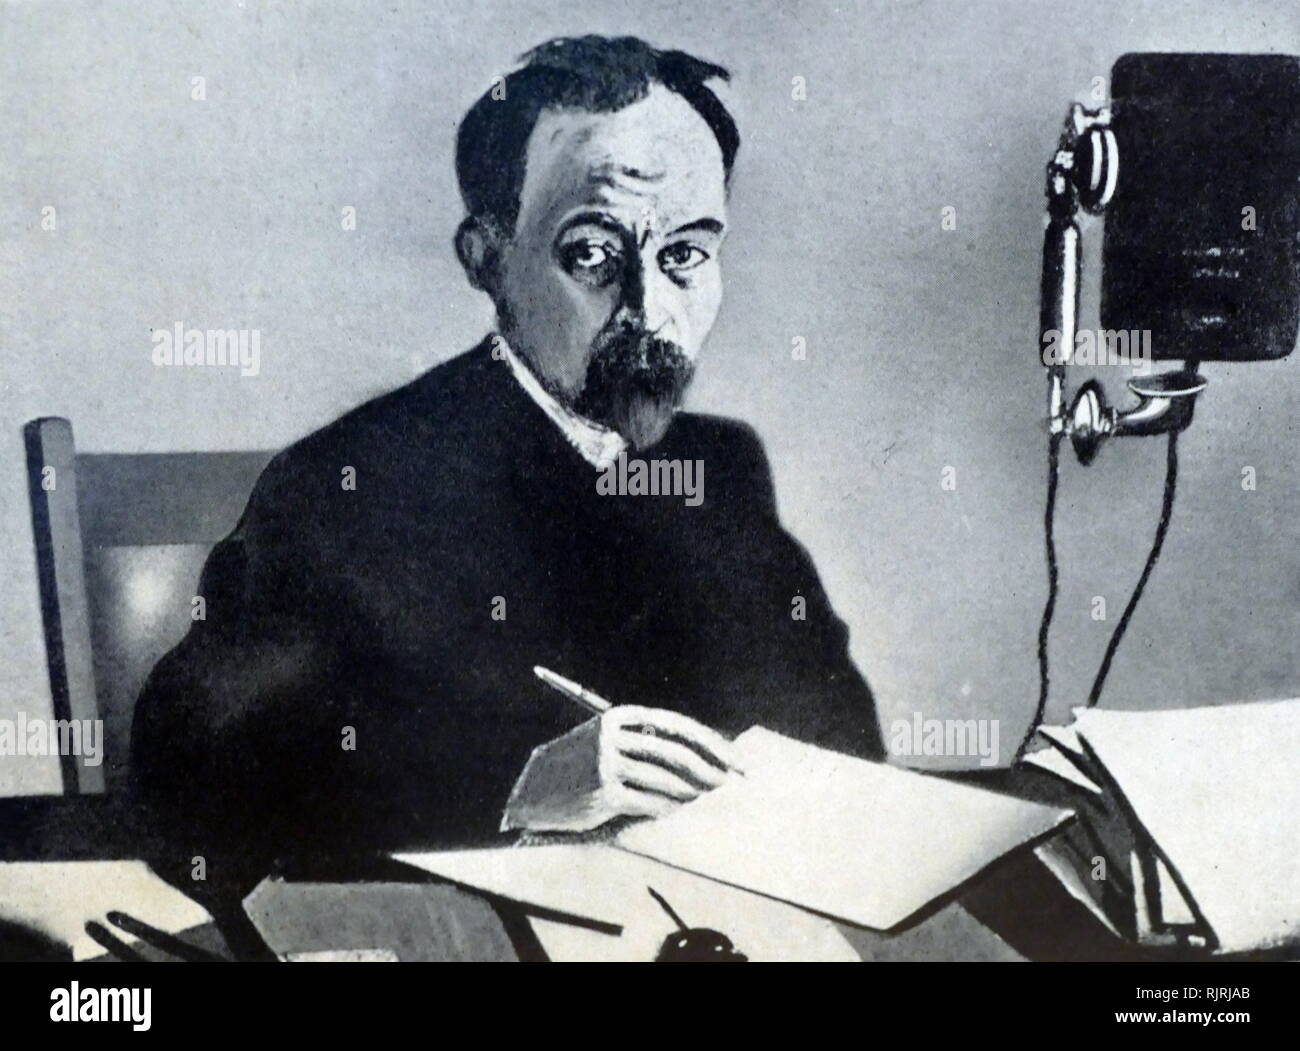 Felix Dzerzhinsky (1877 - 1926), nicknamed Iron Felix; Polish and Soviet Bolshevik revolutionary leader. From 1917 until his death in 1926, Dzerzhinsky led the first two Soviet state security organizations, the Cheka and the OGPU, establishing a secret police for the post-revolutionary Soviet government. - Stock Image